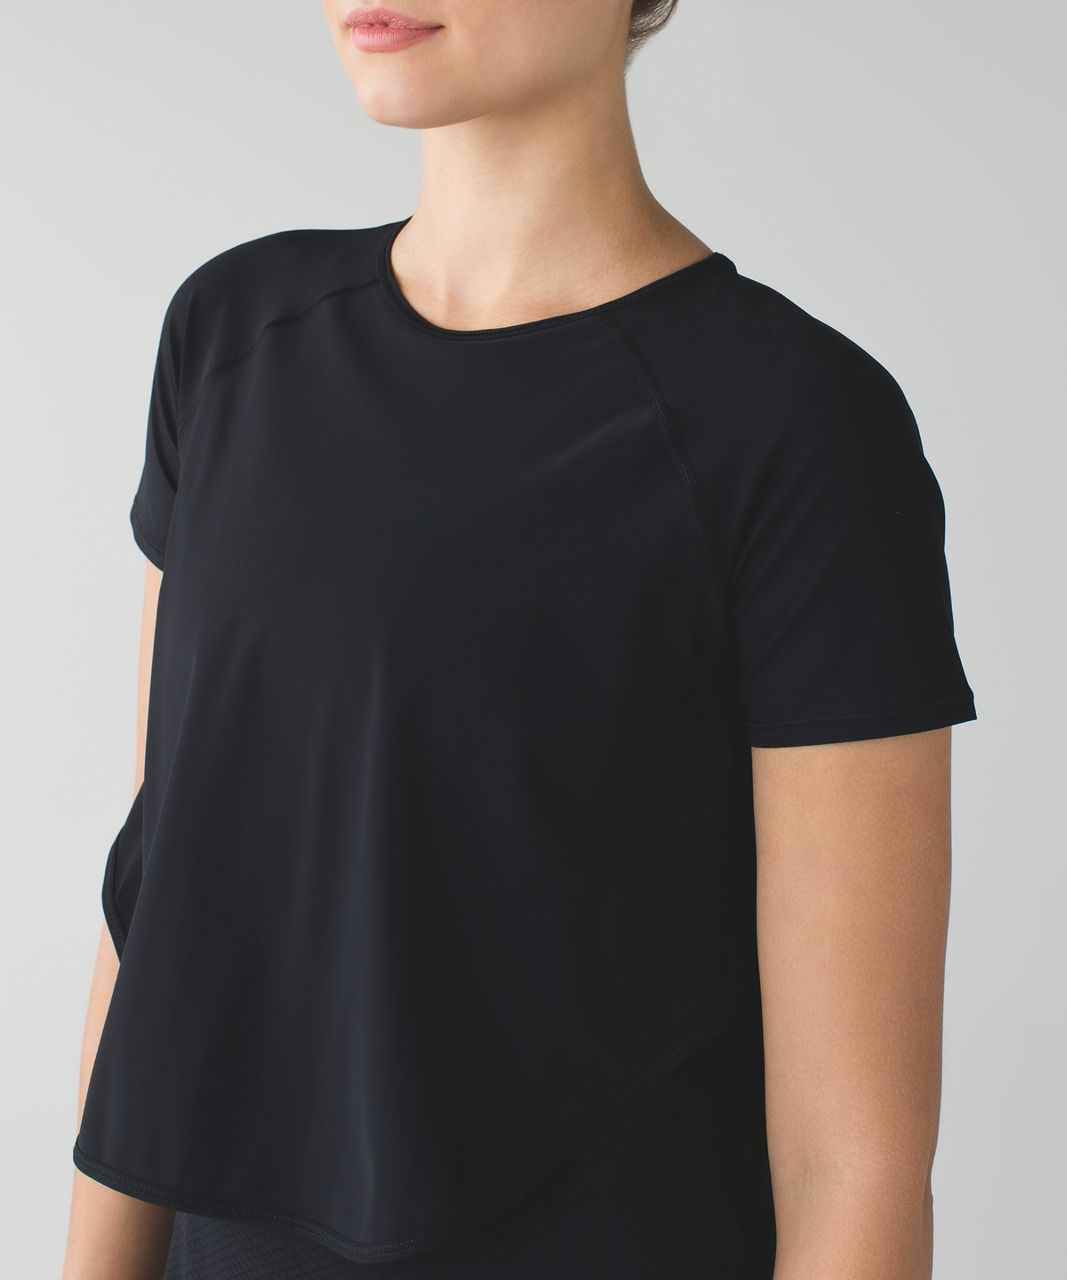 Lululemon Cover Me Tee - Black